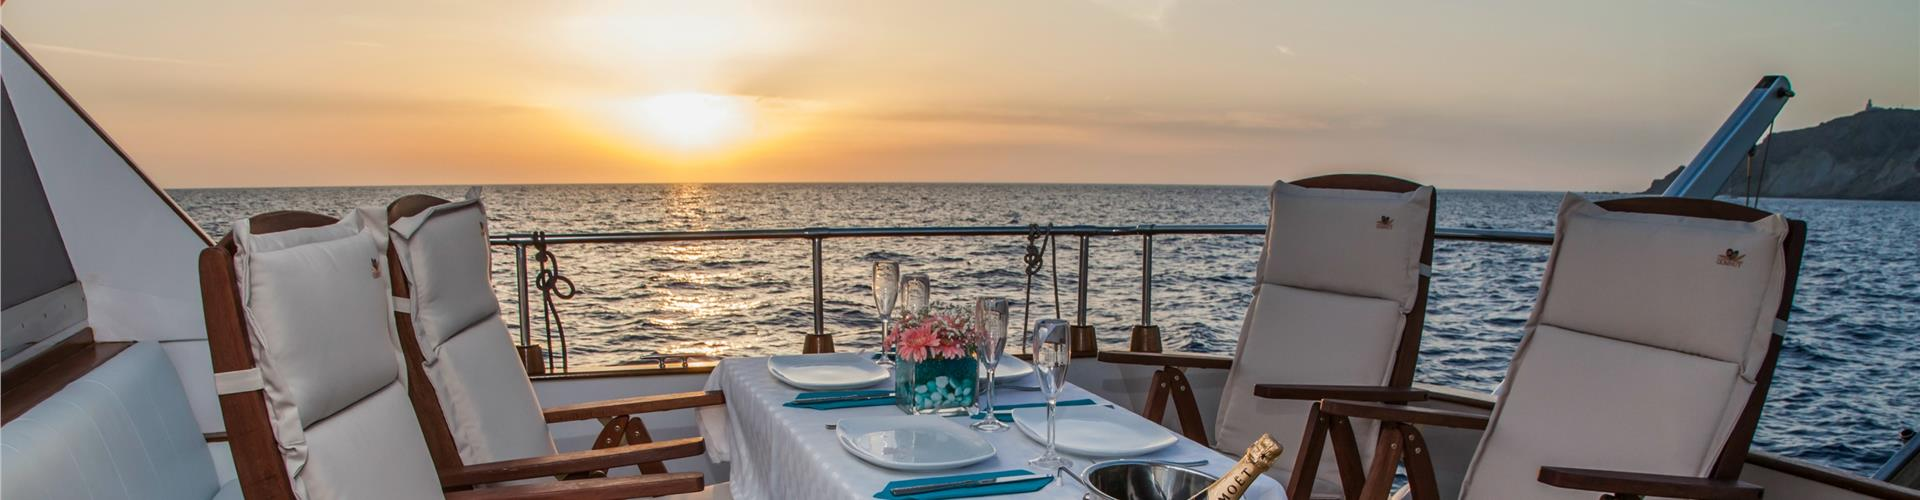 Photo of Luxury Motor Yacht Cruise with Gourmet 5-Course Lunch or Dinner